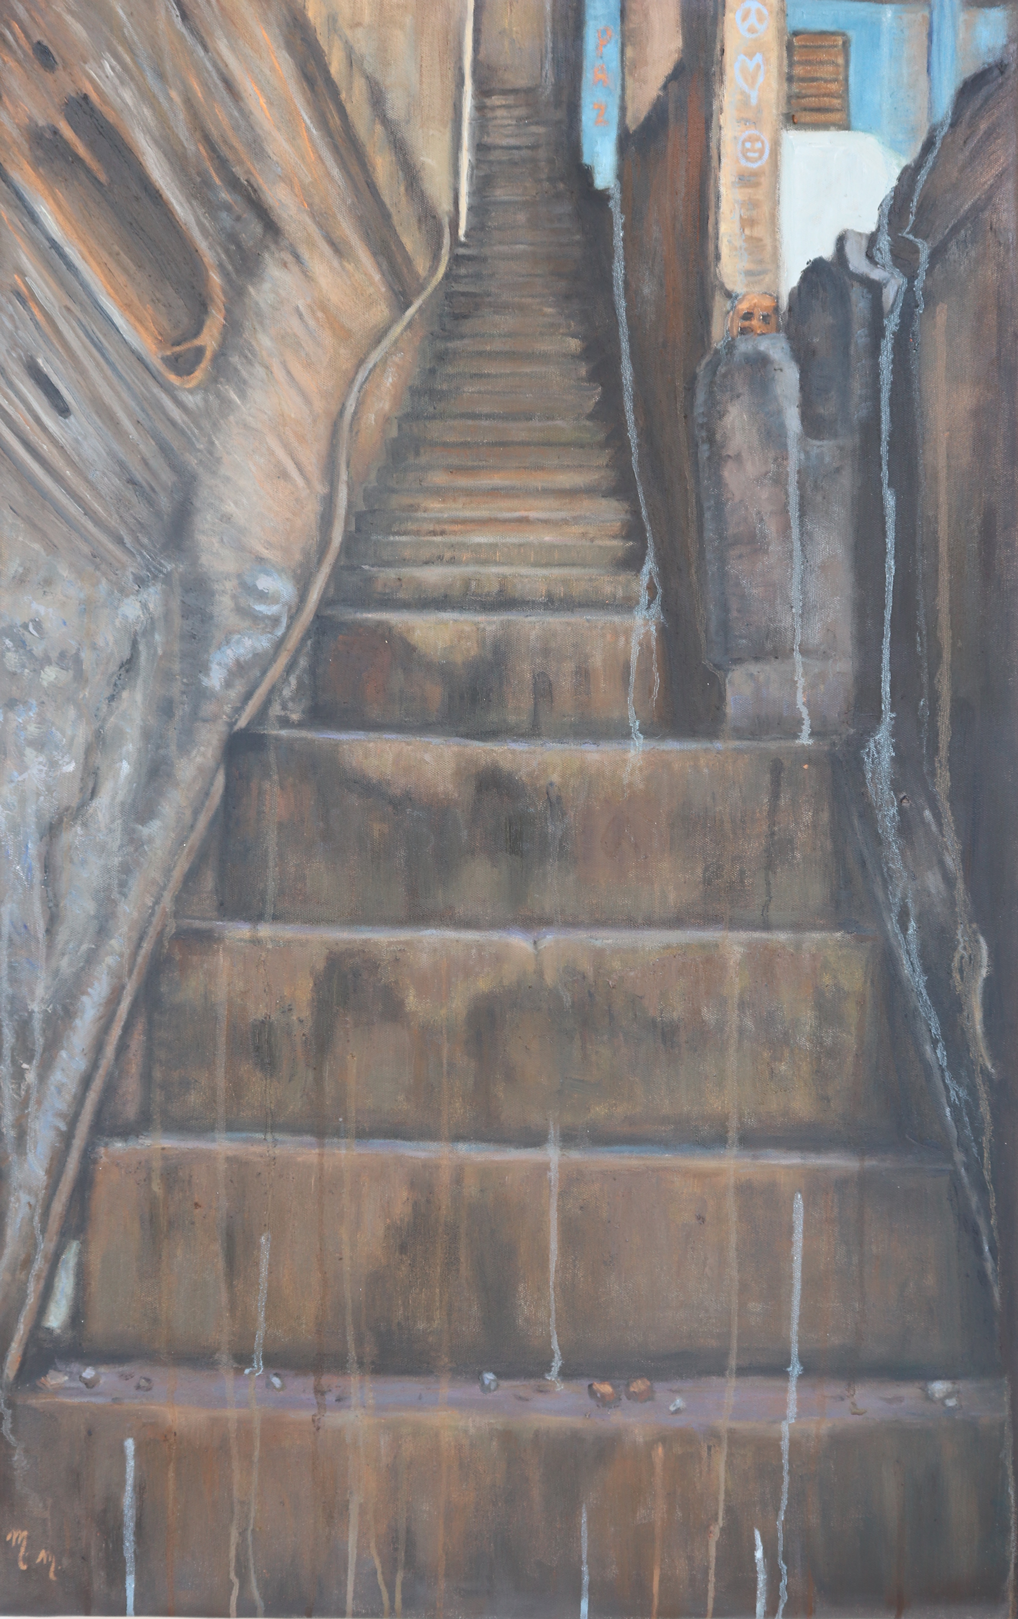 "Up We Go - 38.5"" x 25"" - Oil on canvas"